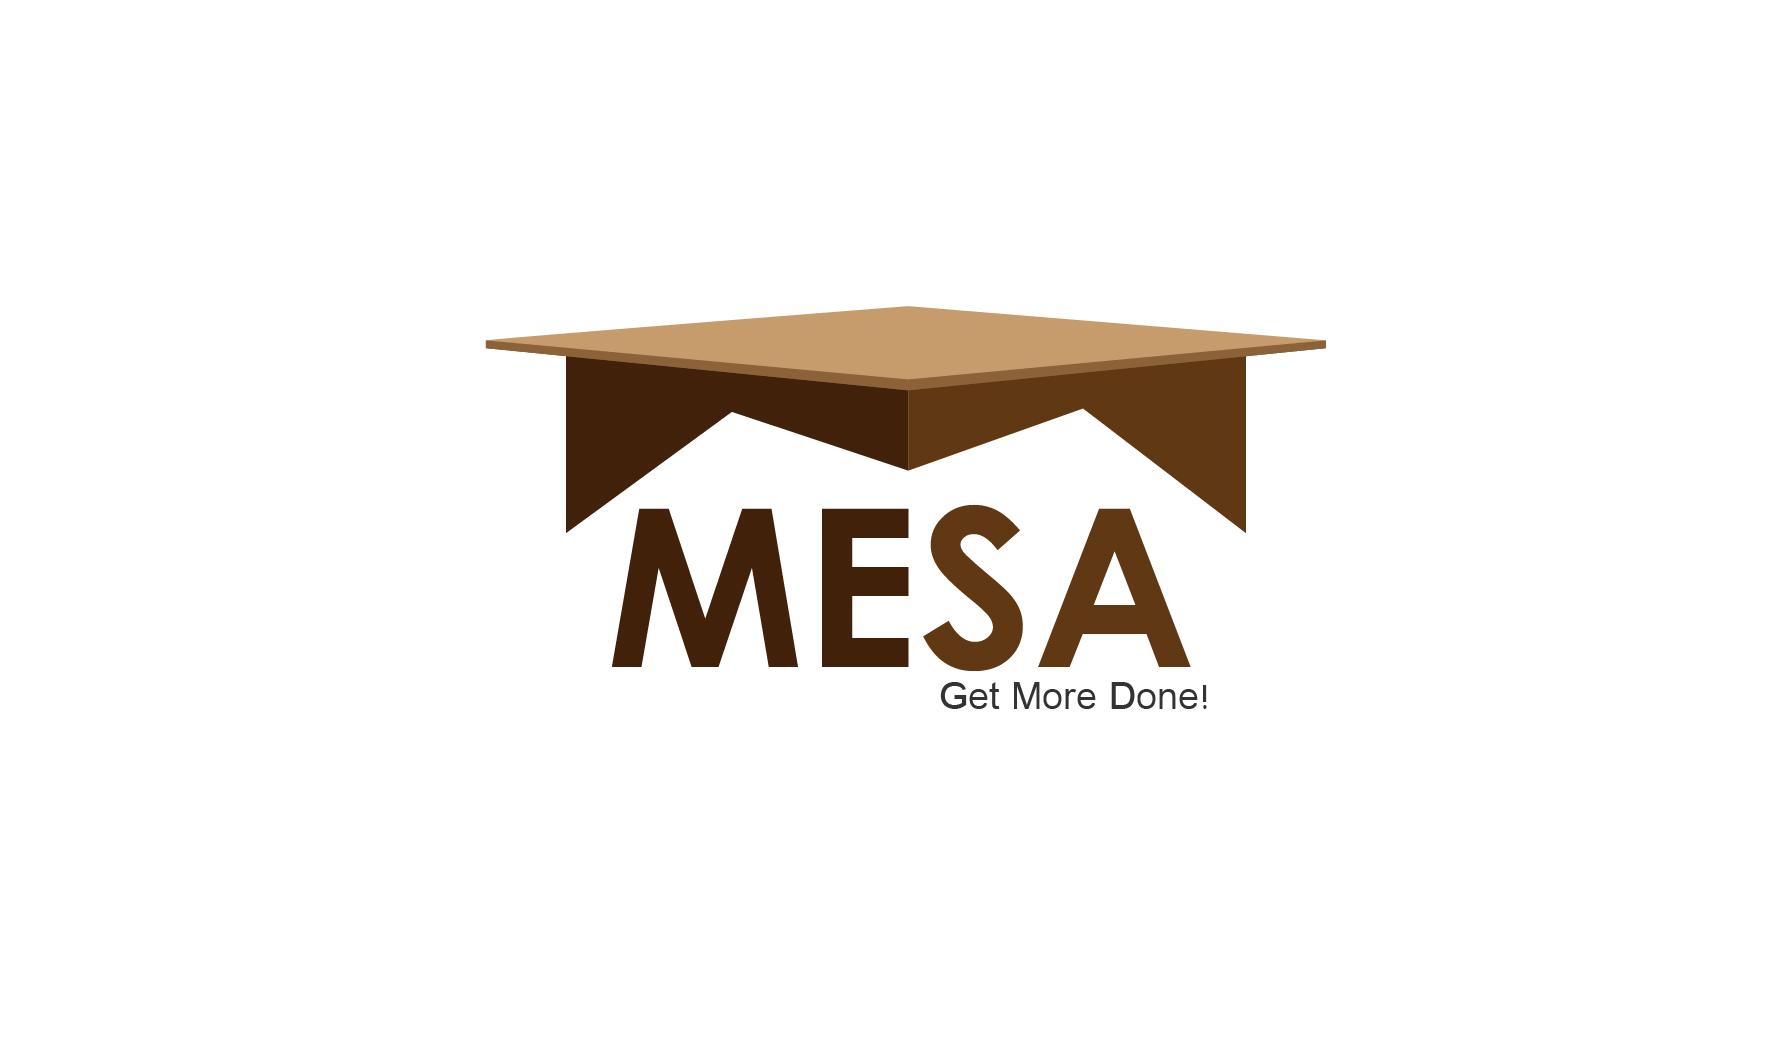 Logo Design by 3draw - Entry No. 189 in the Logo Design Contest Logo Design for Mesa.